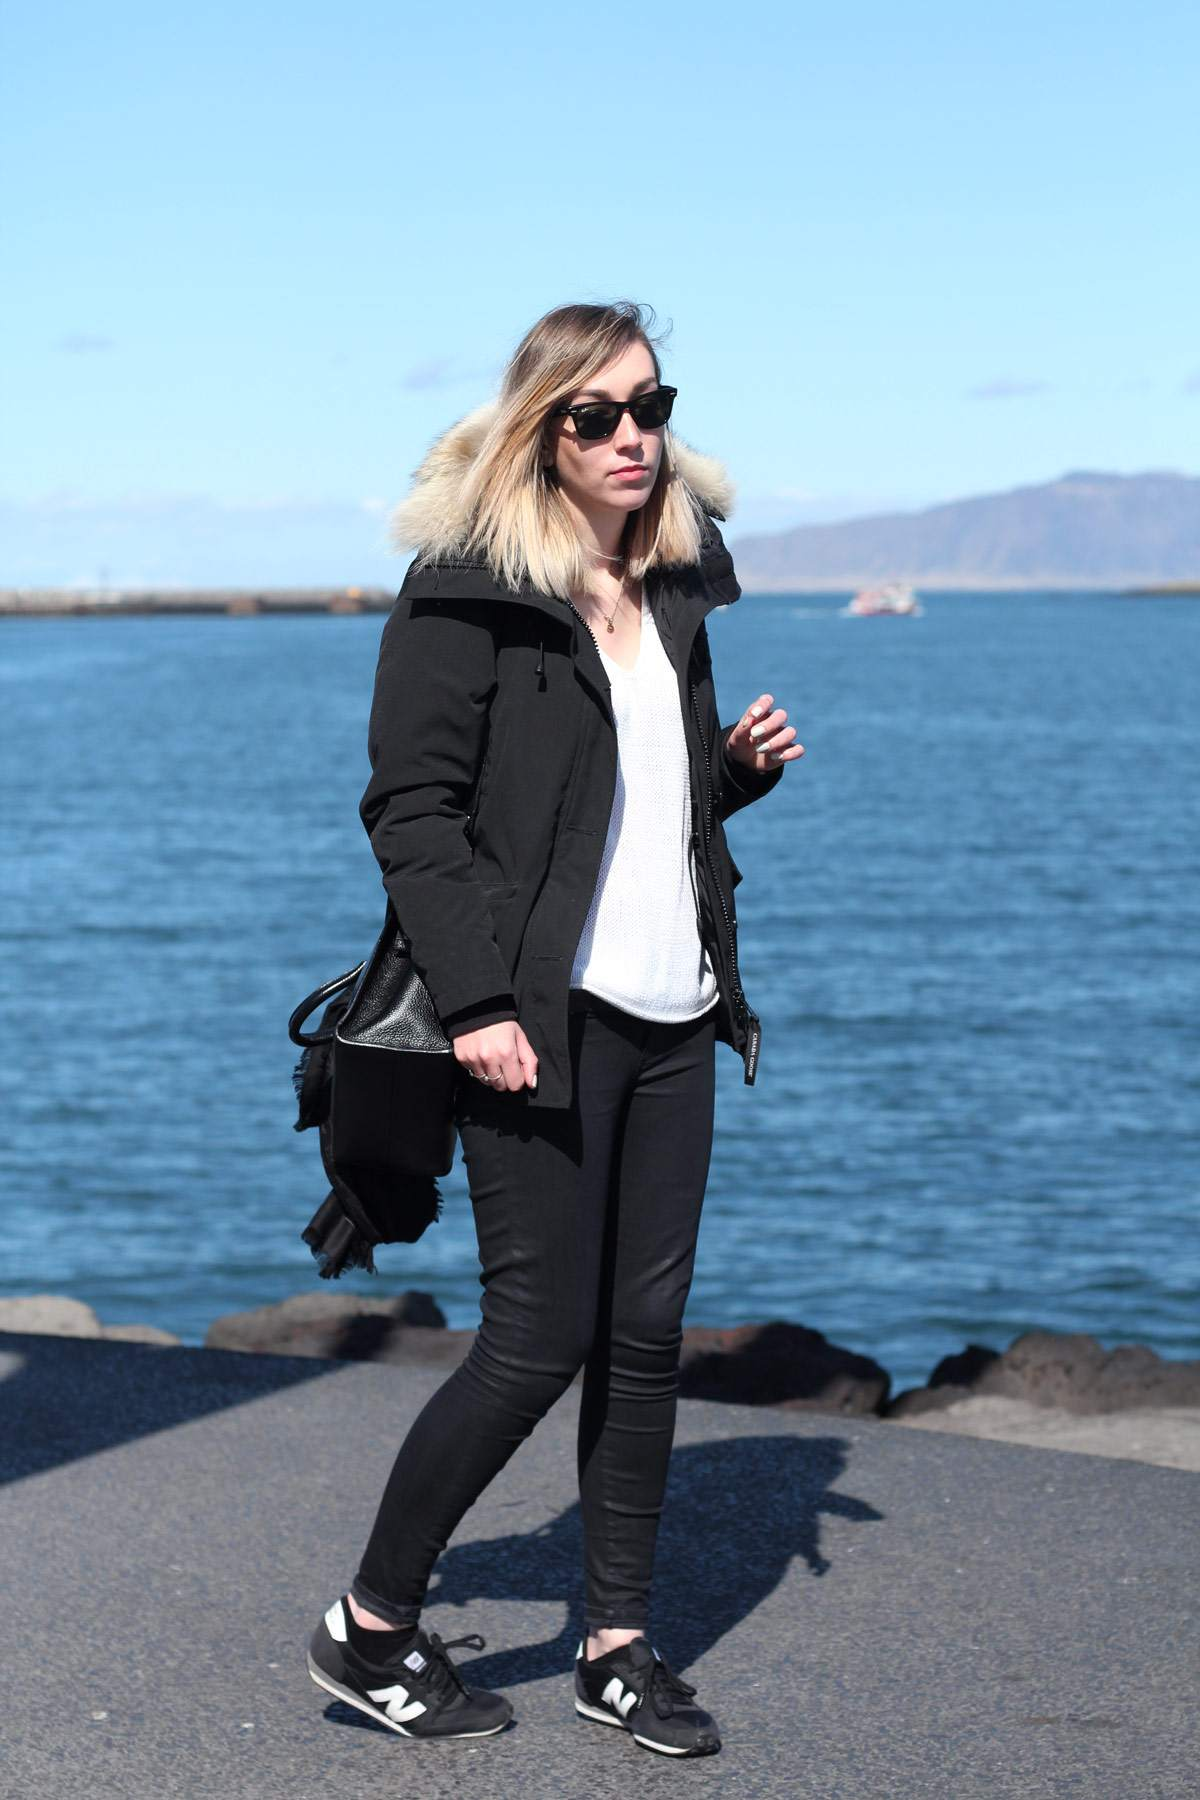 iceland-reykjavik-keflavik-review-photo-diary-travel-blog-downtown-harbour-outfit-2